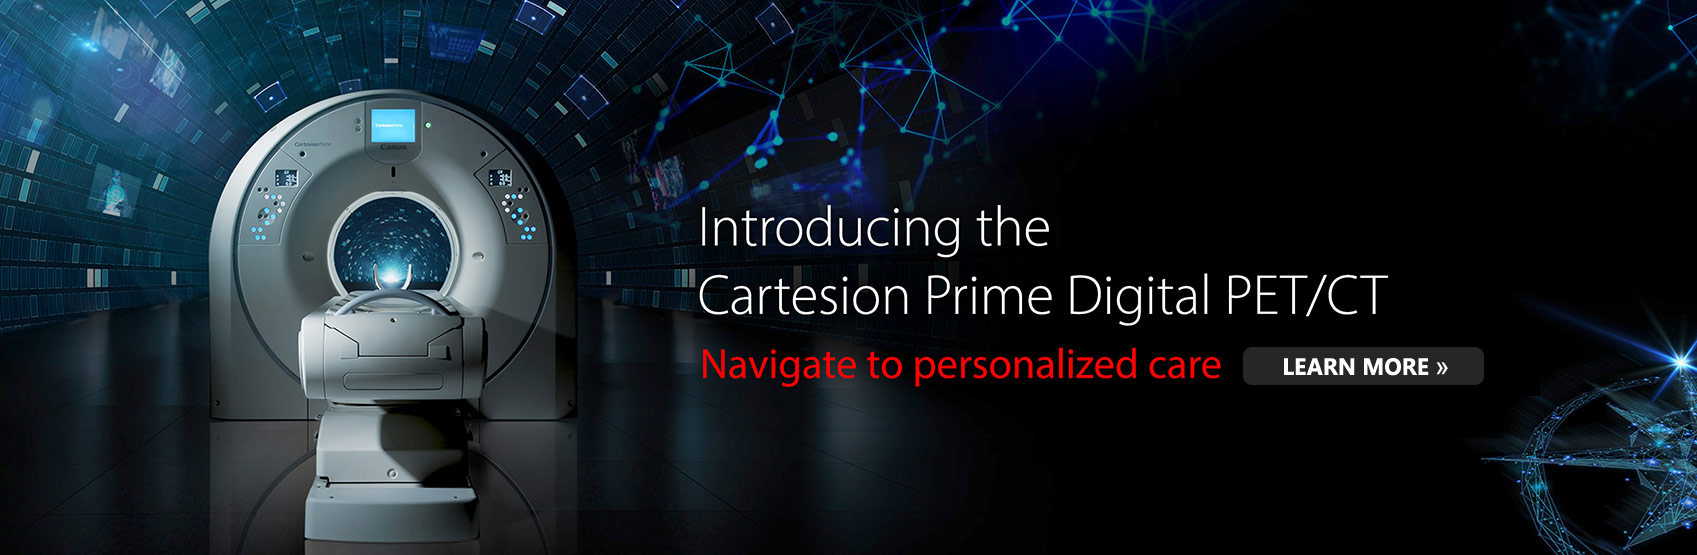 Introducing the Cartesion Prime Digital PET/CT | Navigate to personalized care | Learn More